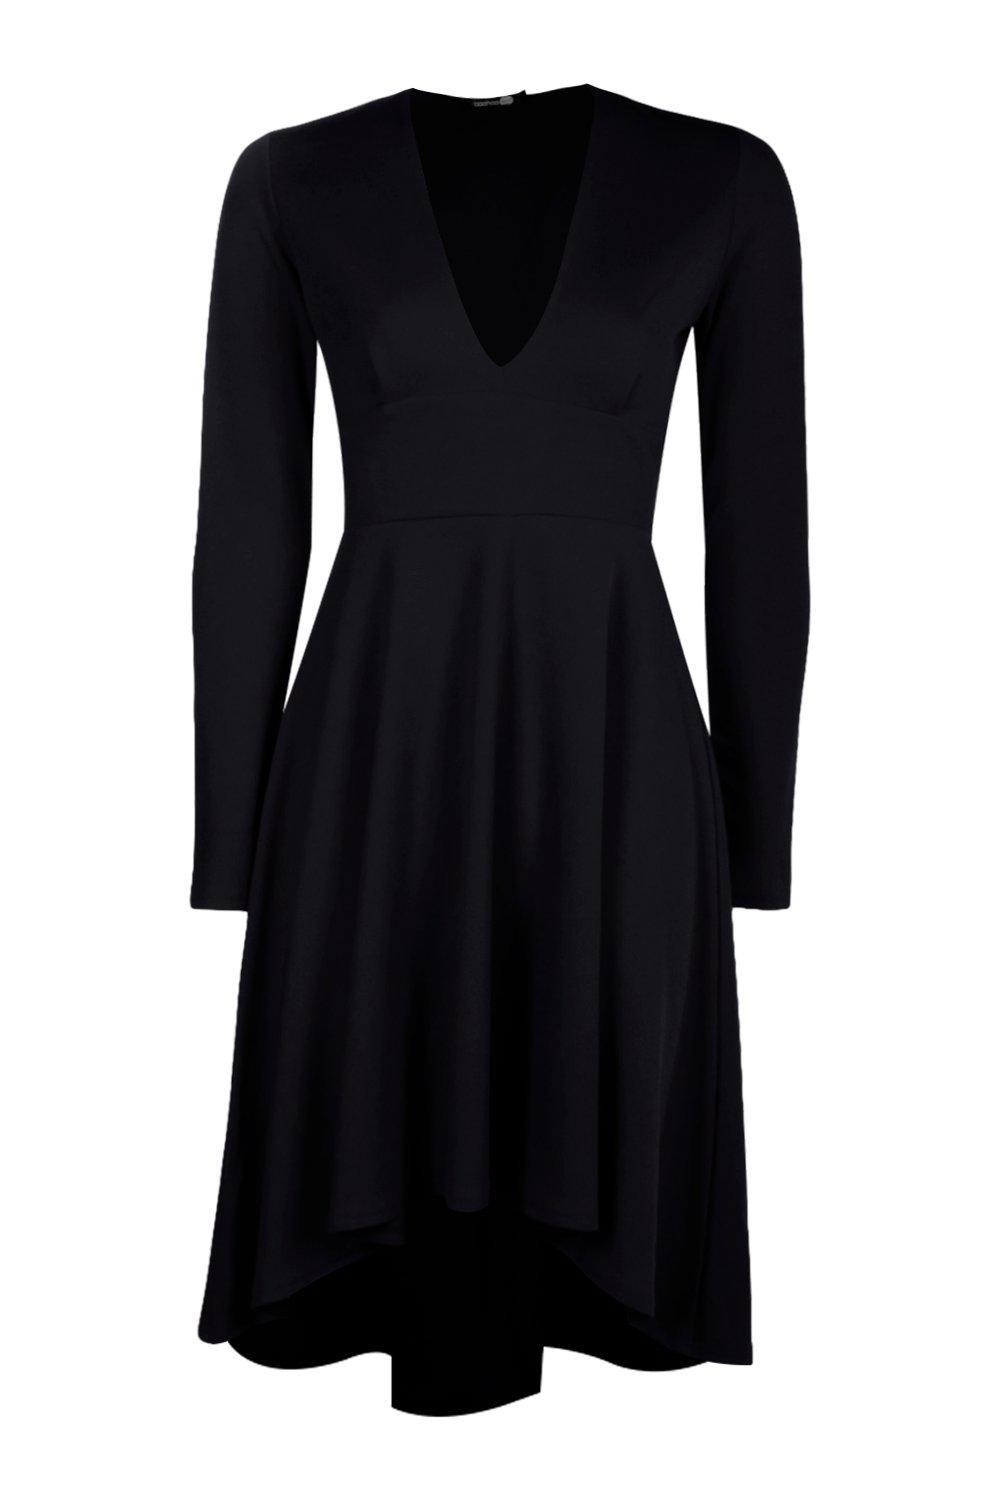 eb55c4a32e6 Gallery. Previously sold at: Boohoo · Women's Black Lace Cocktail Dresses  ...